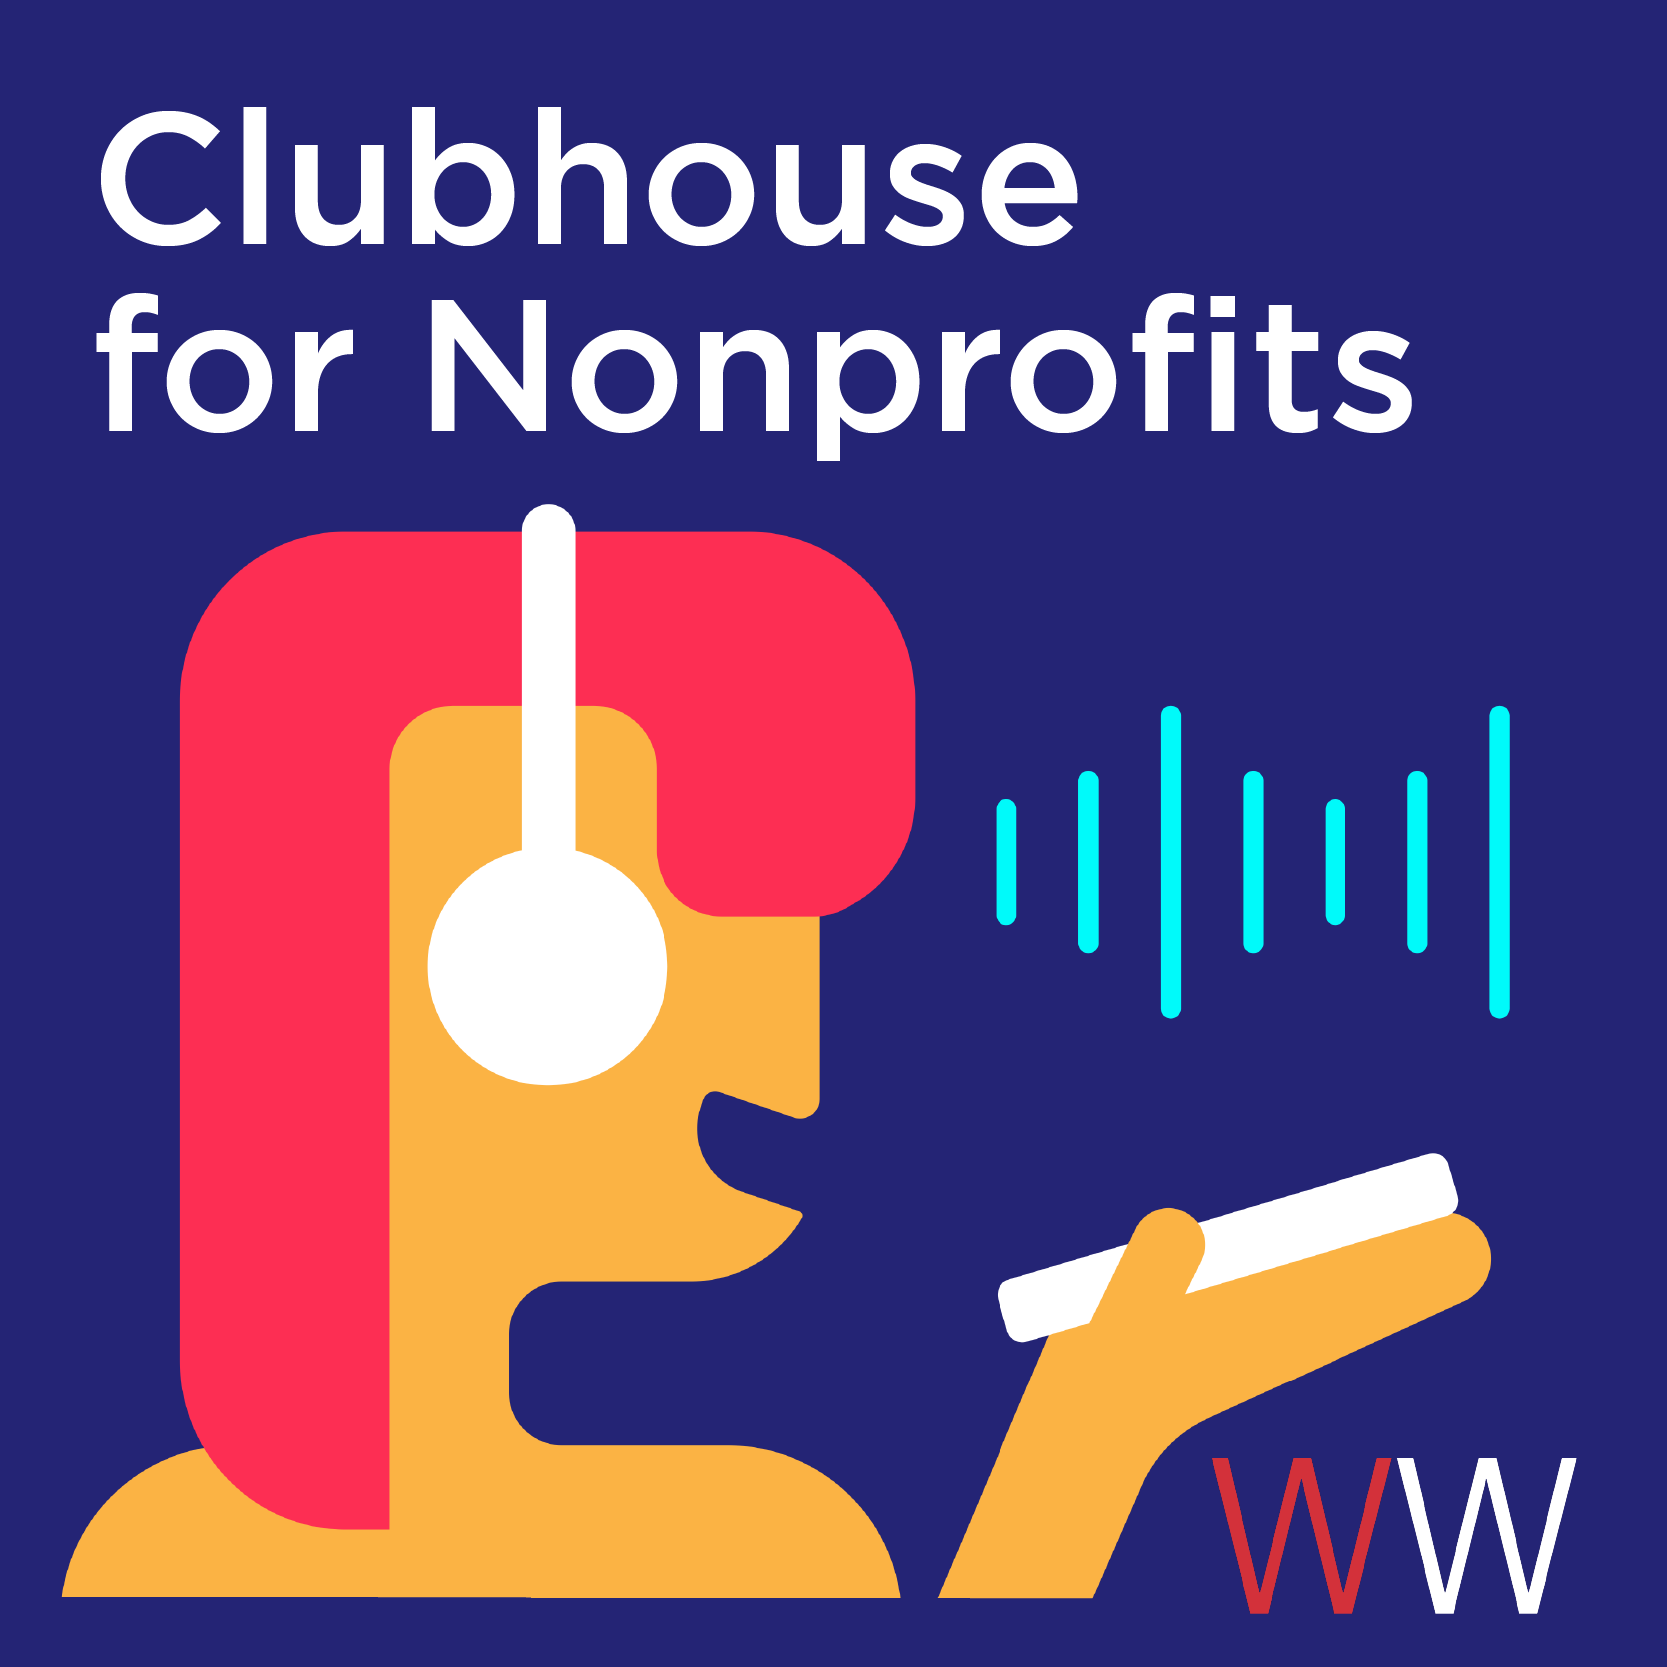 Clubhouse for Nonprofits